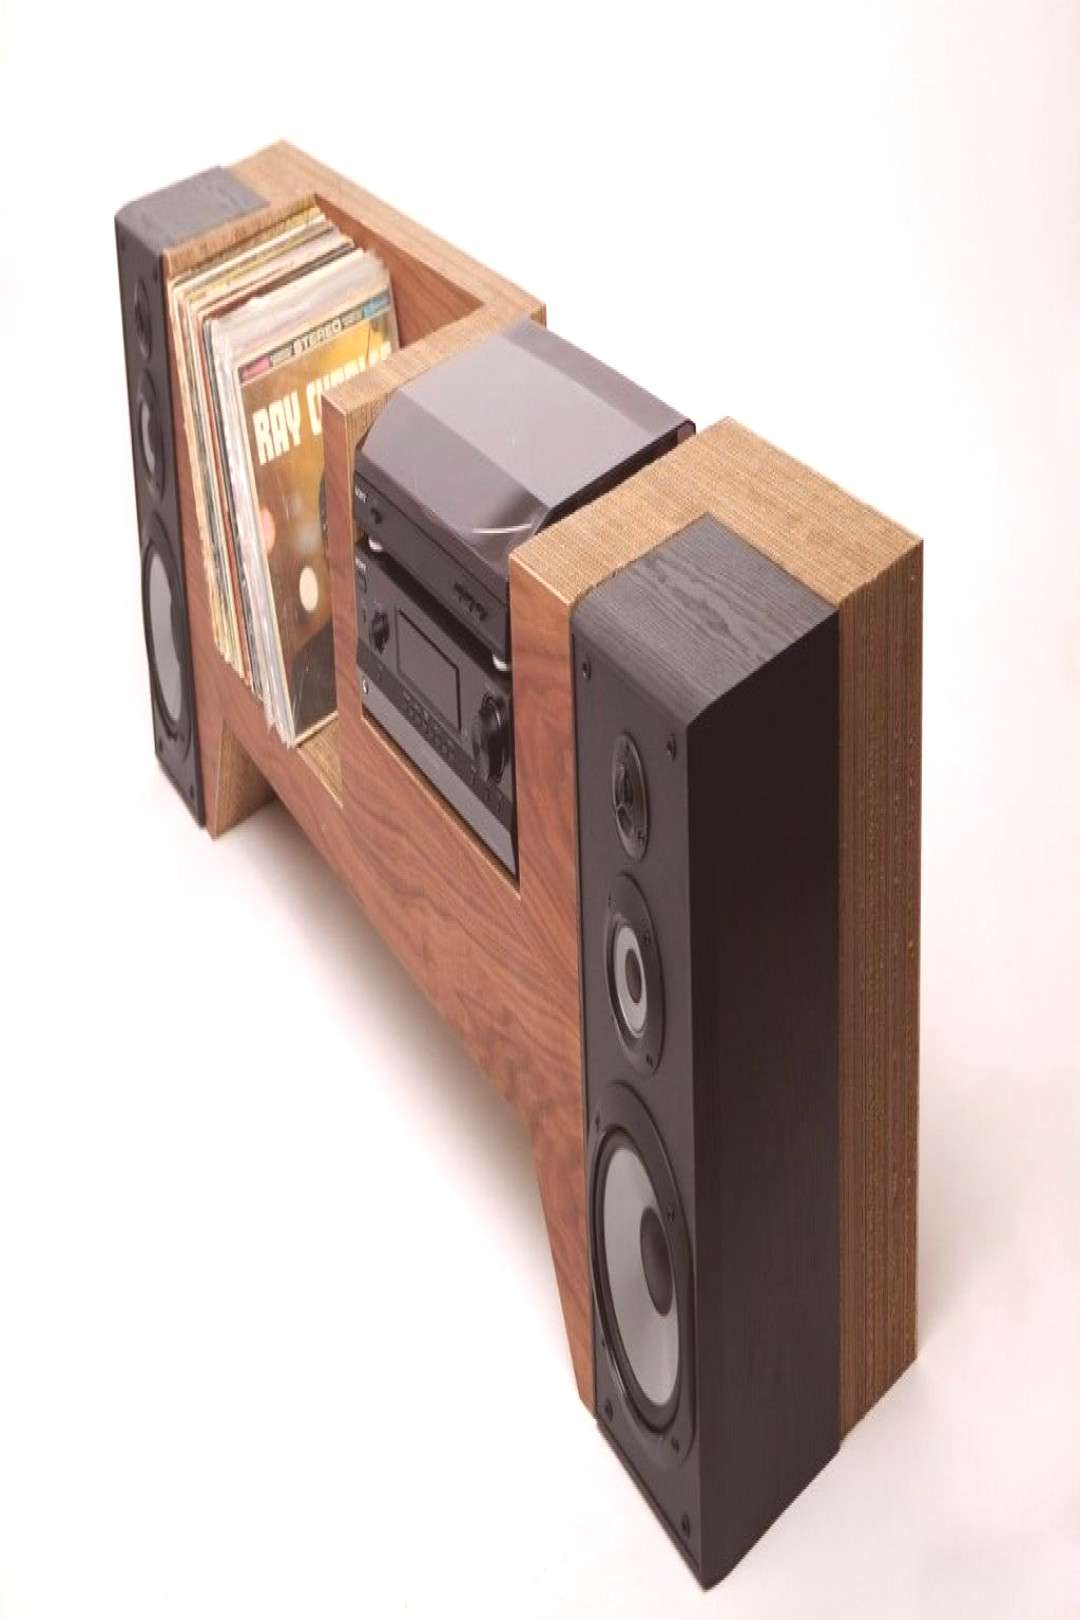 10 incredible record player consoles to reimagine your living space - -